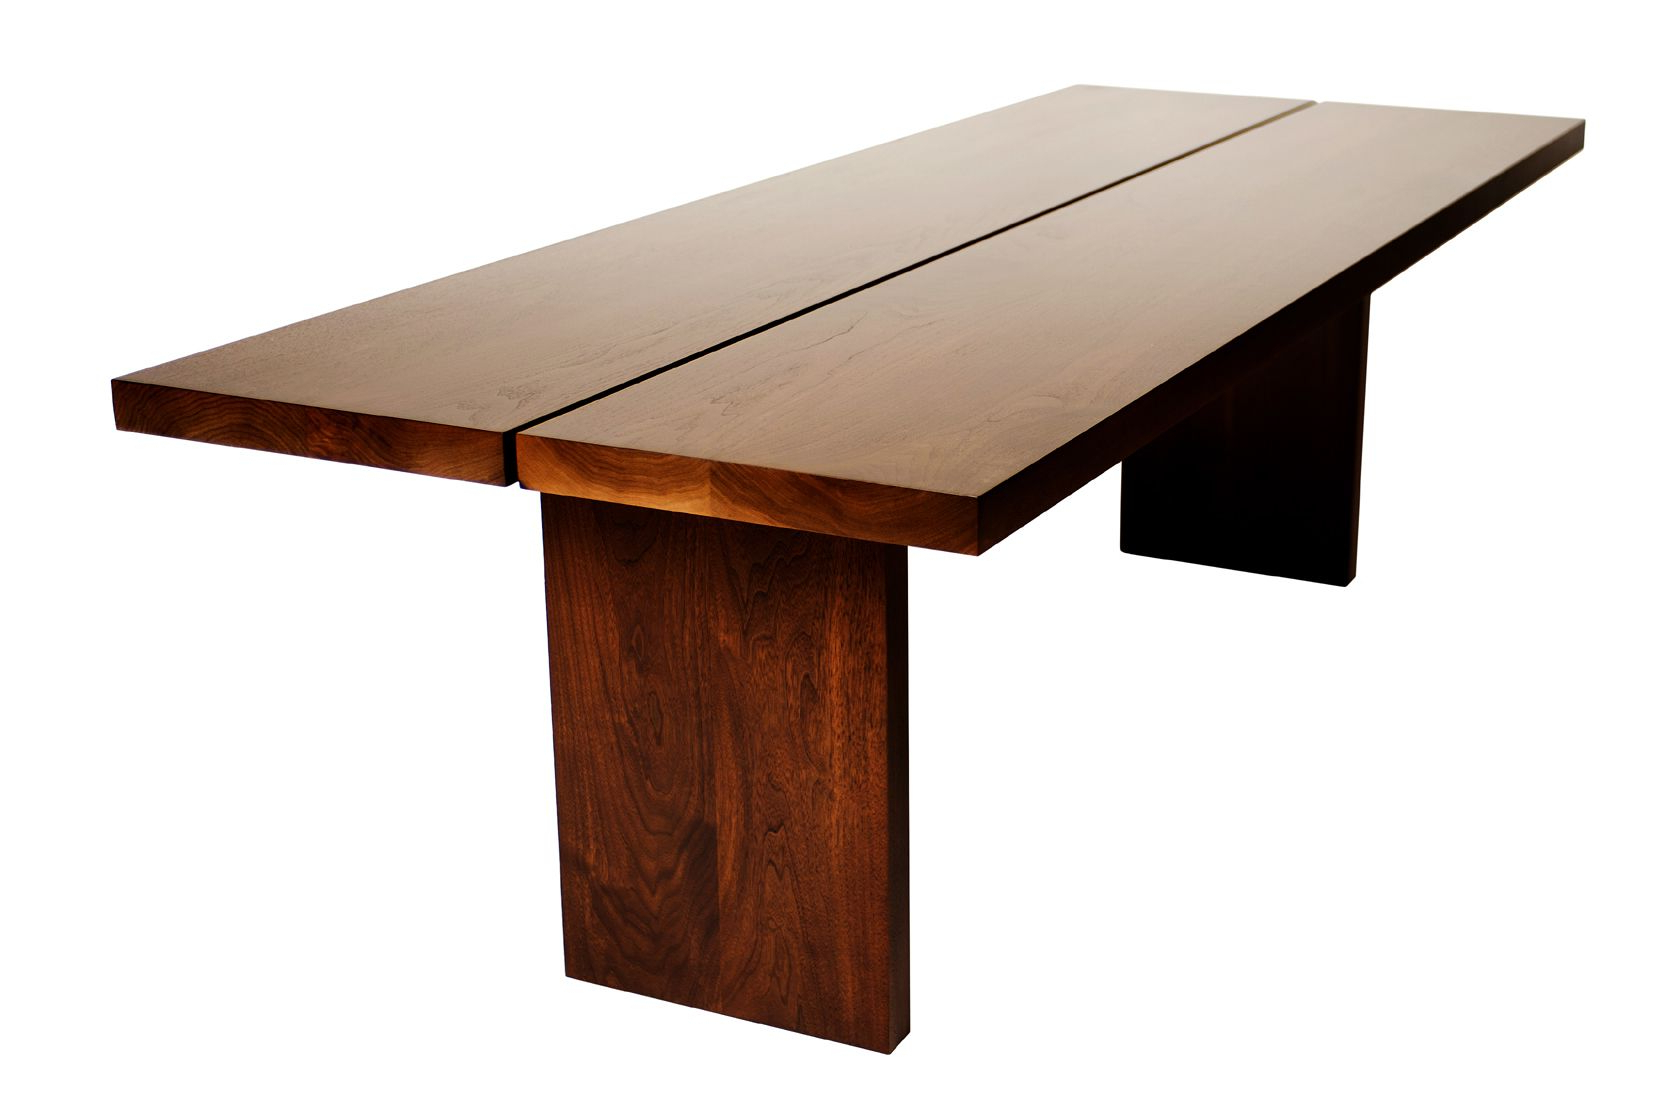 Trendy Transitional 8 Seating Rectangular Helsinki Dining Tables Pertaining To Mara Dining Table (View 22 of 25)